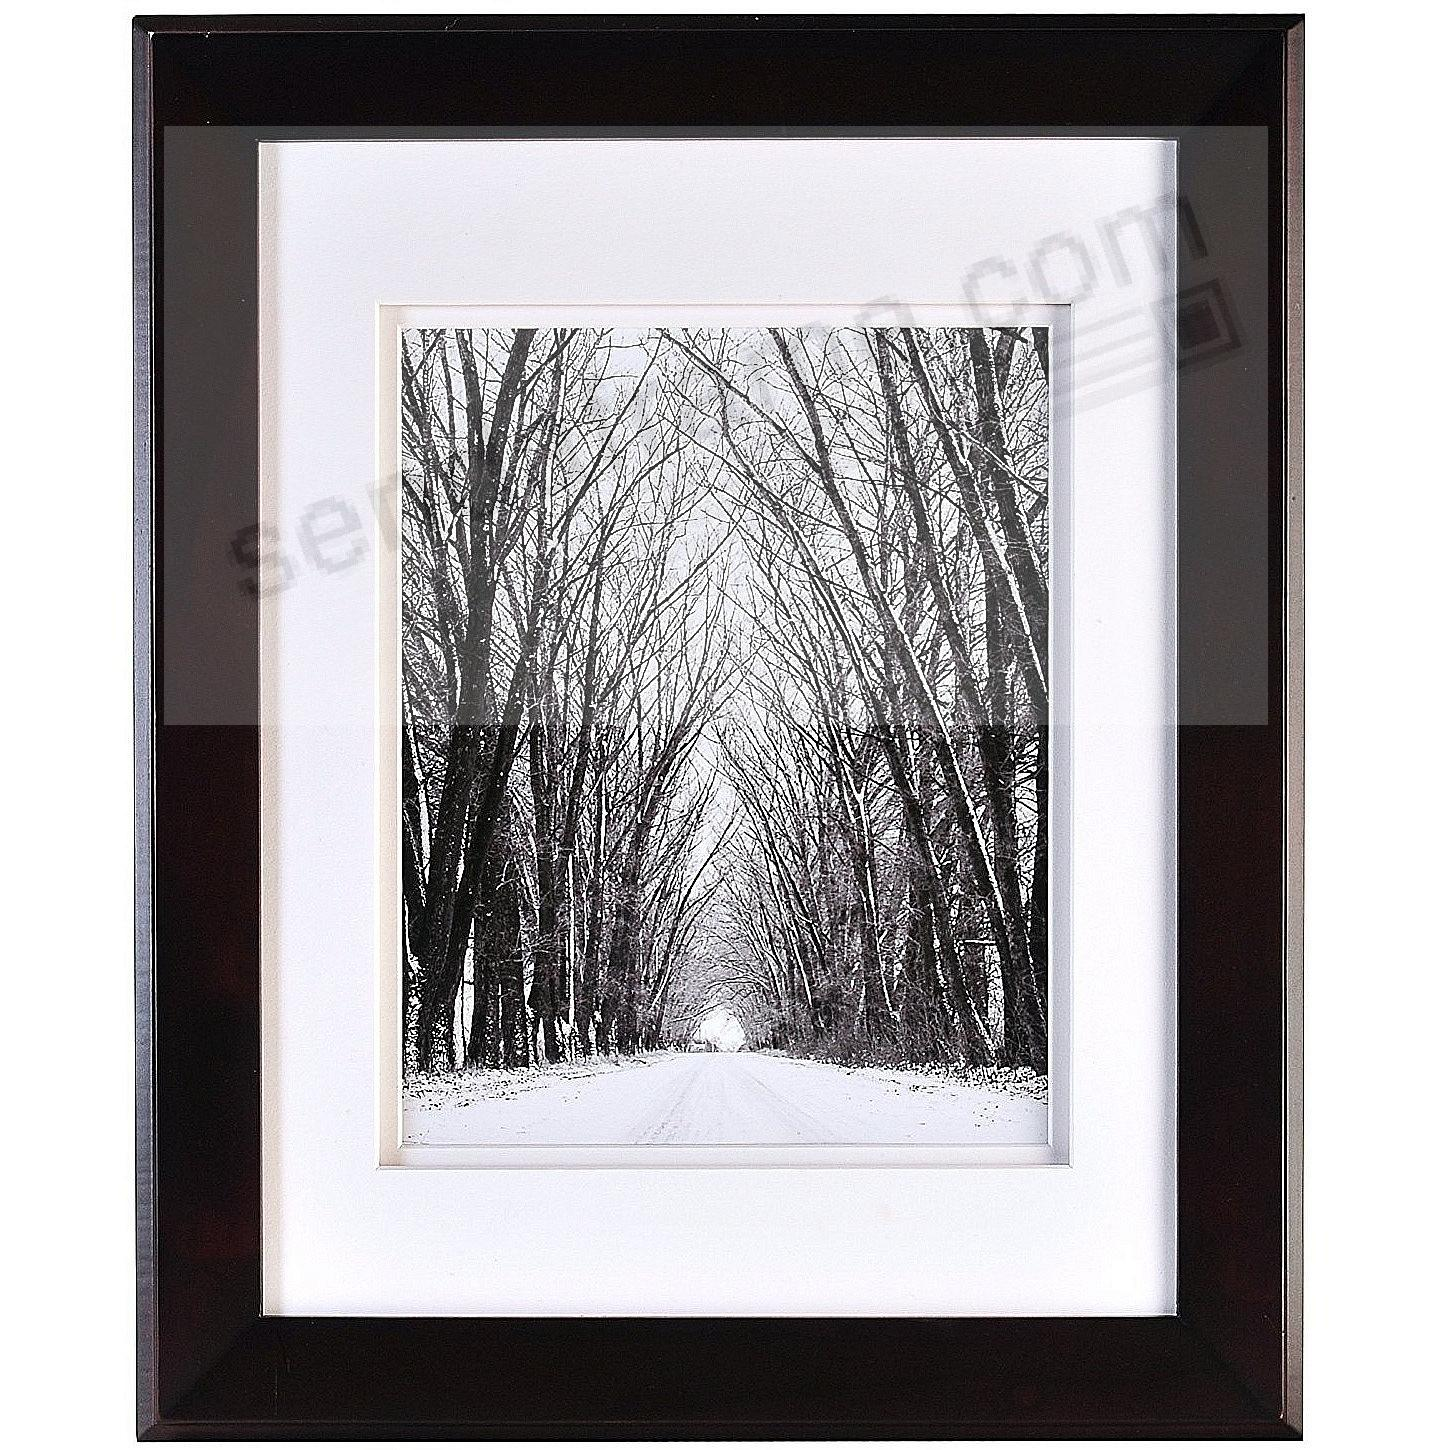 CHELSEA Black Wood 1x14/8x10 Dbl-Matted Frame from ARTCARE® by Nielsen®